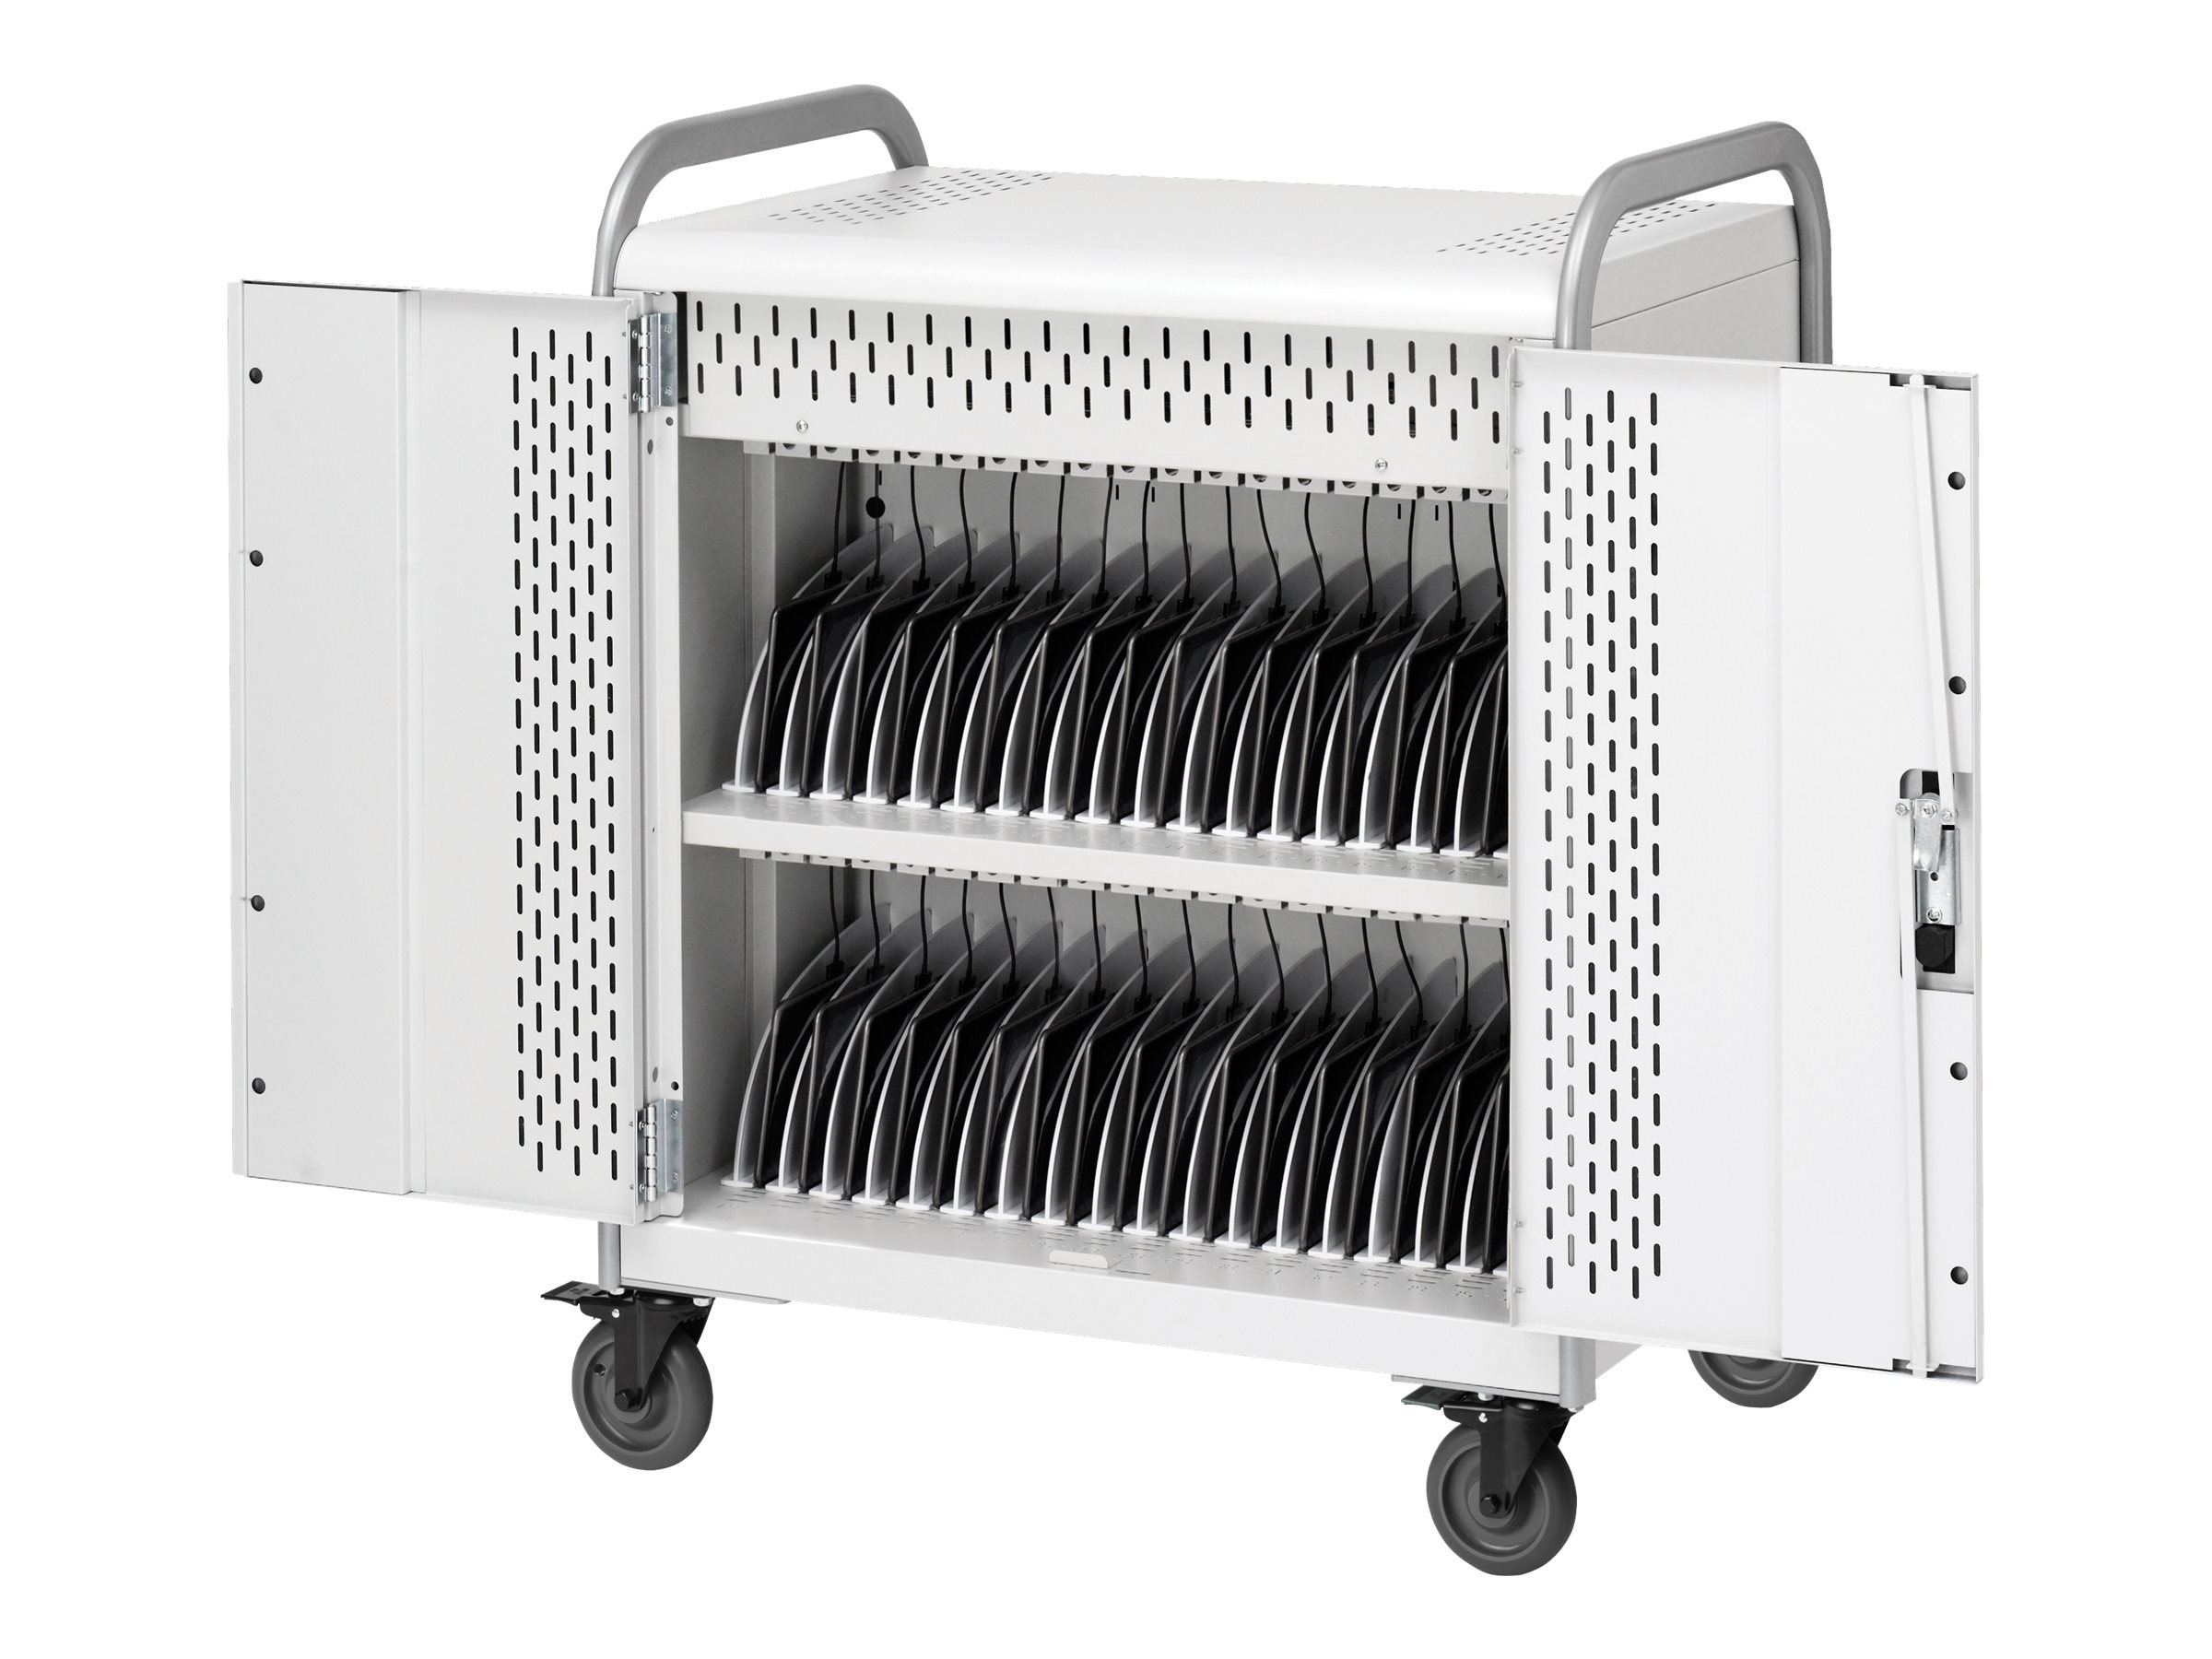 Bretford Manufacturing 36-Unit Chromebook Tablet Cart, MDMTAB36-SPLOCK